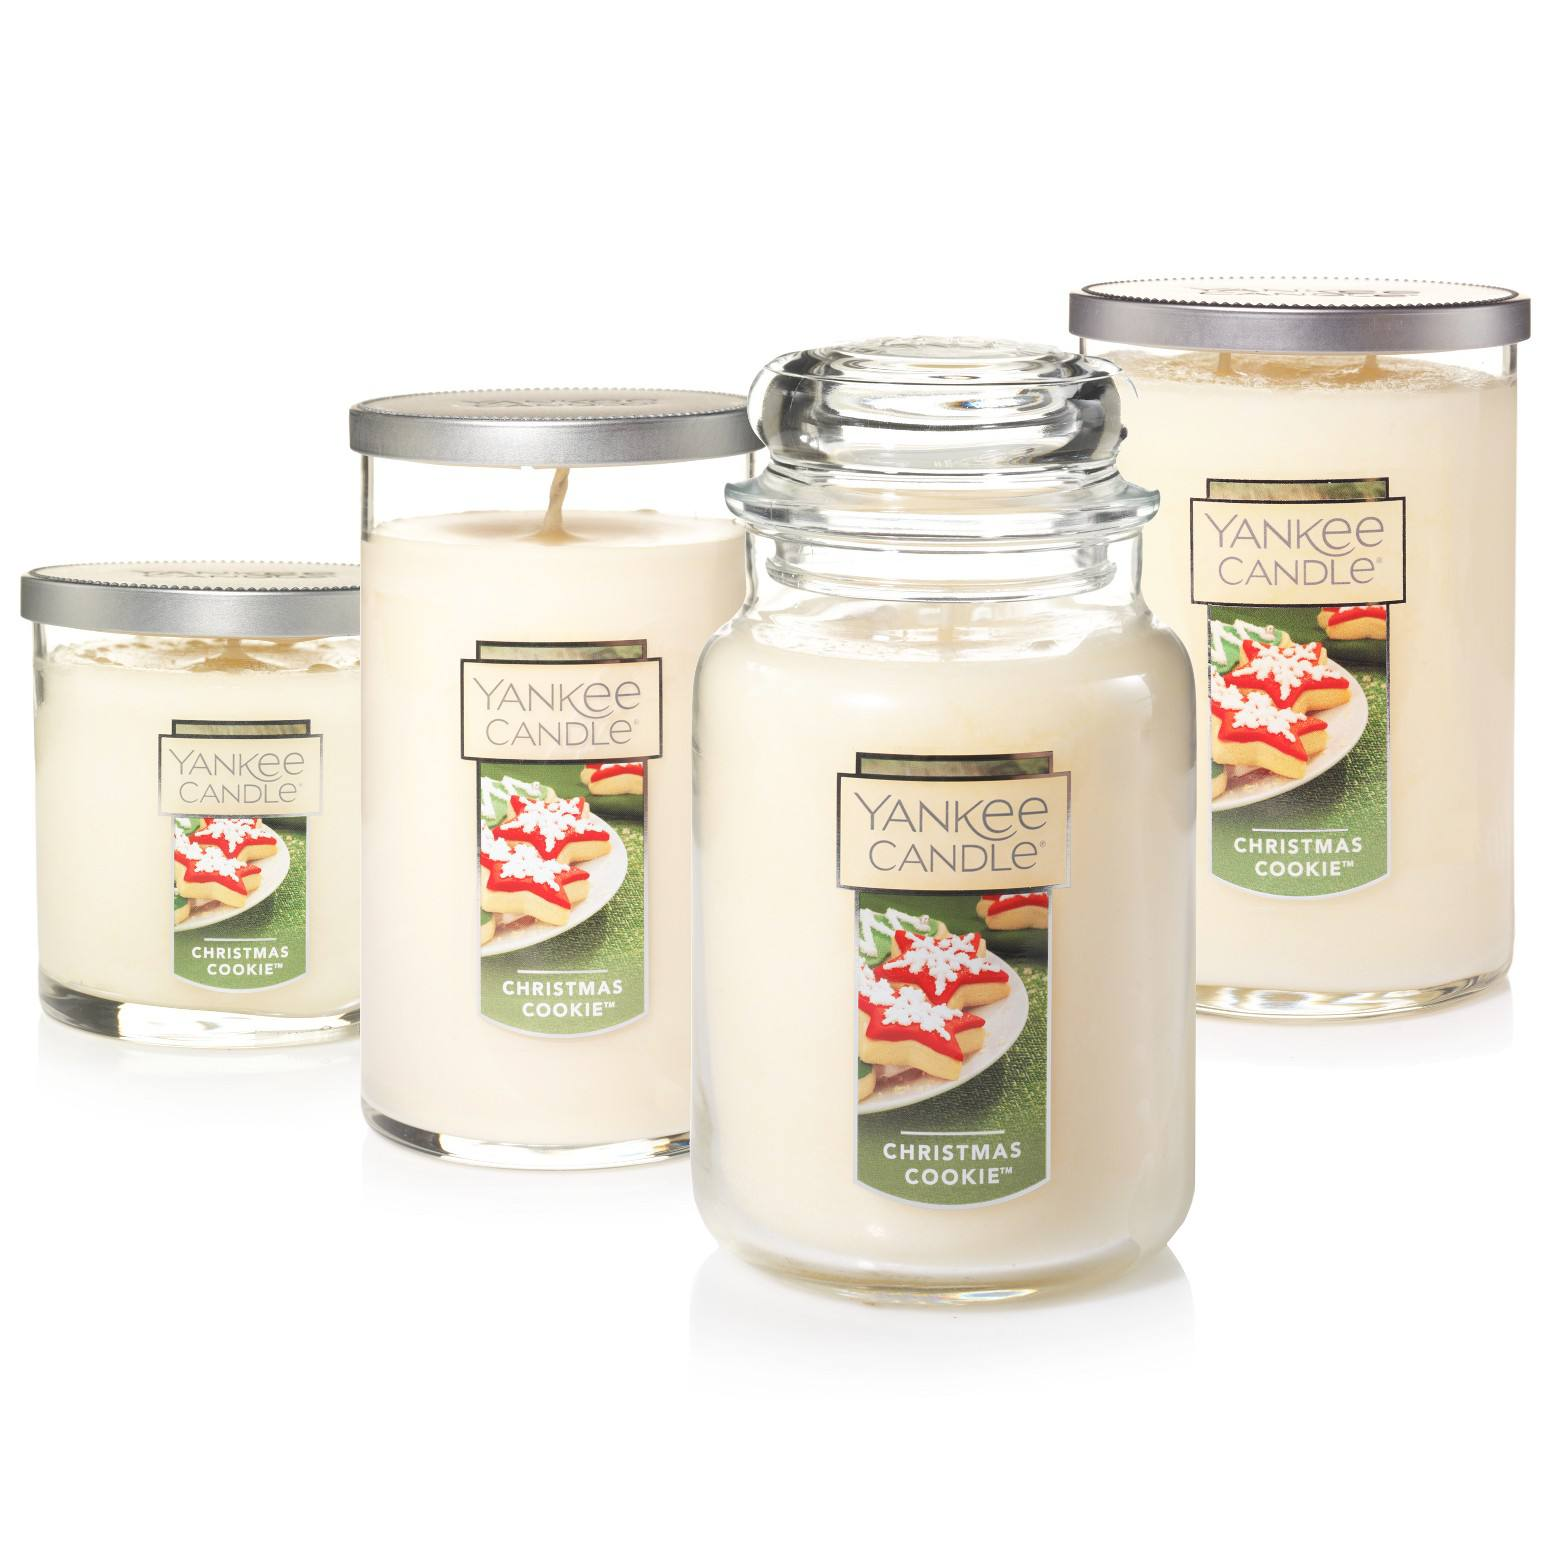 15 Cute Holiday Candles We Love